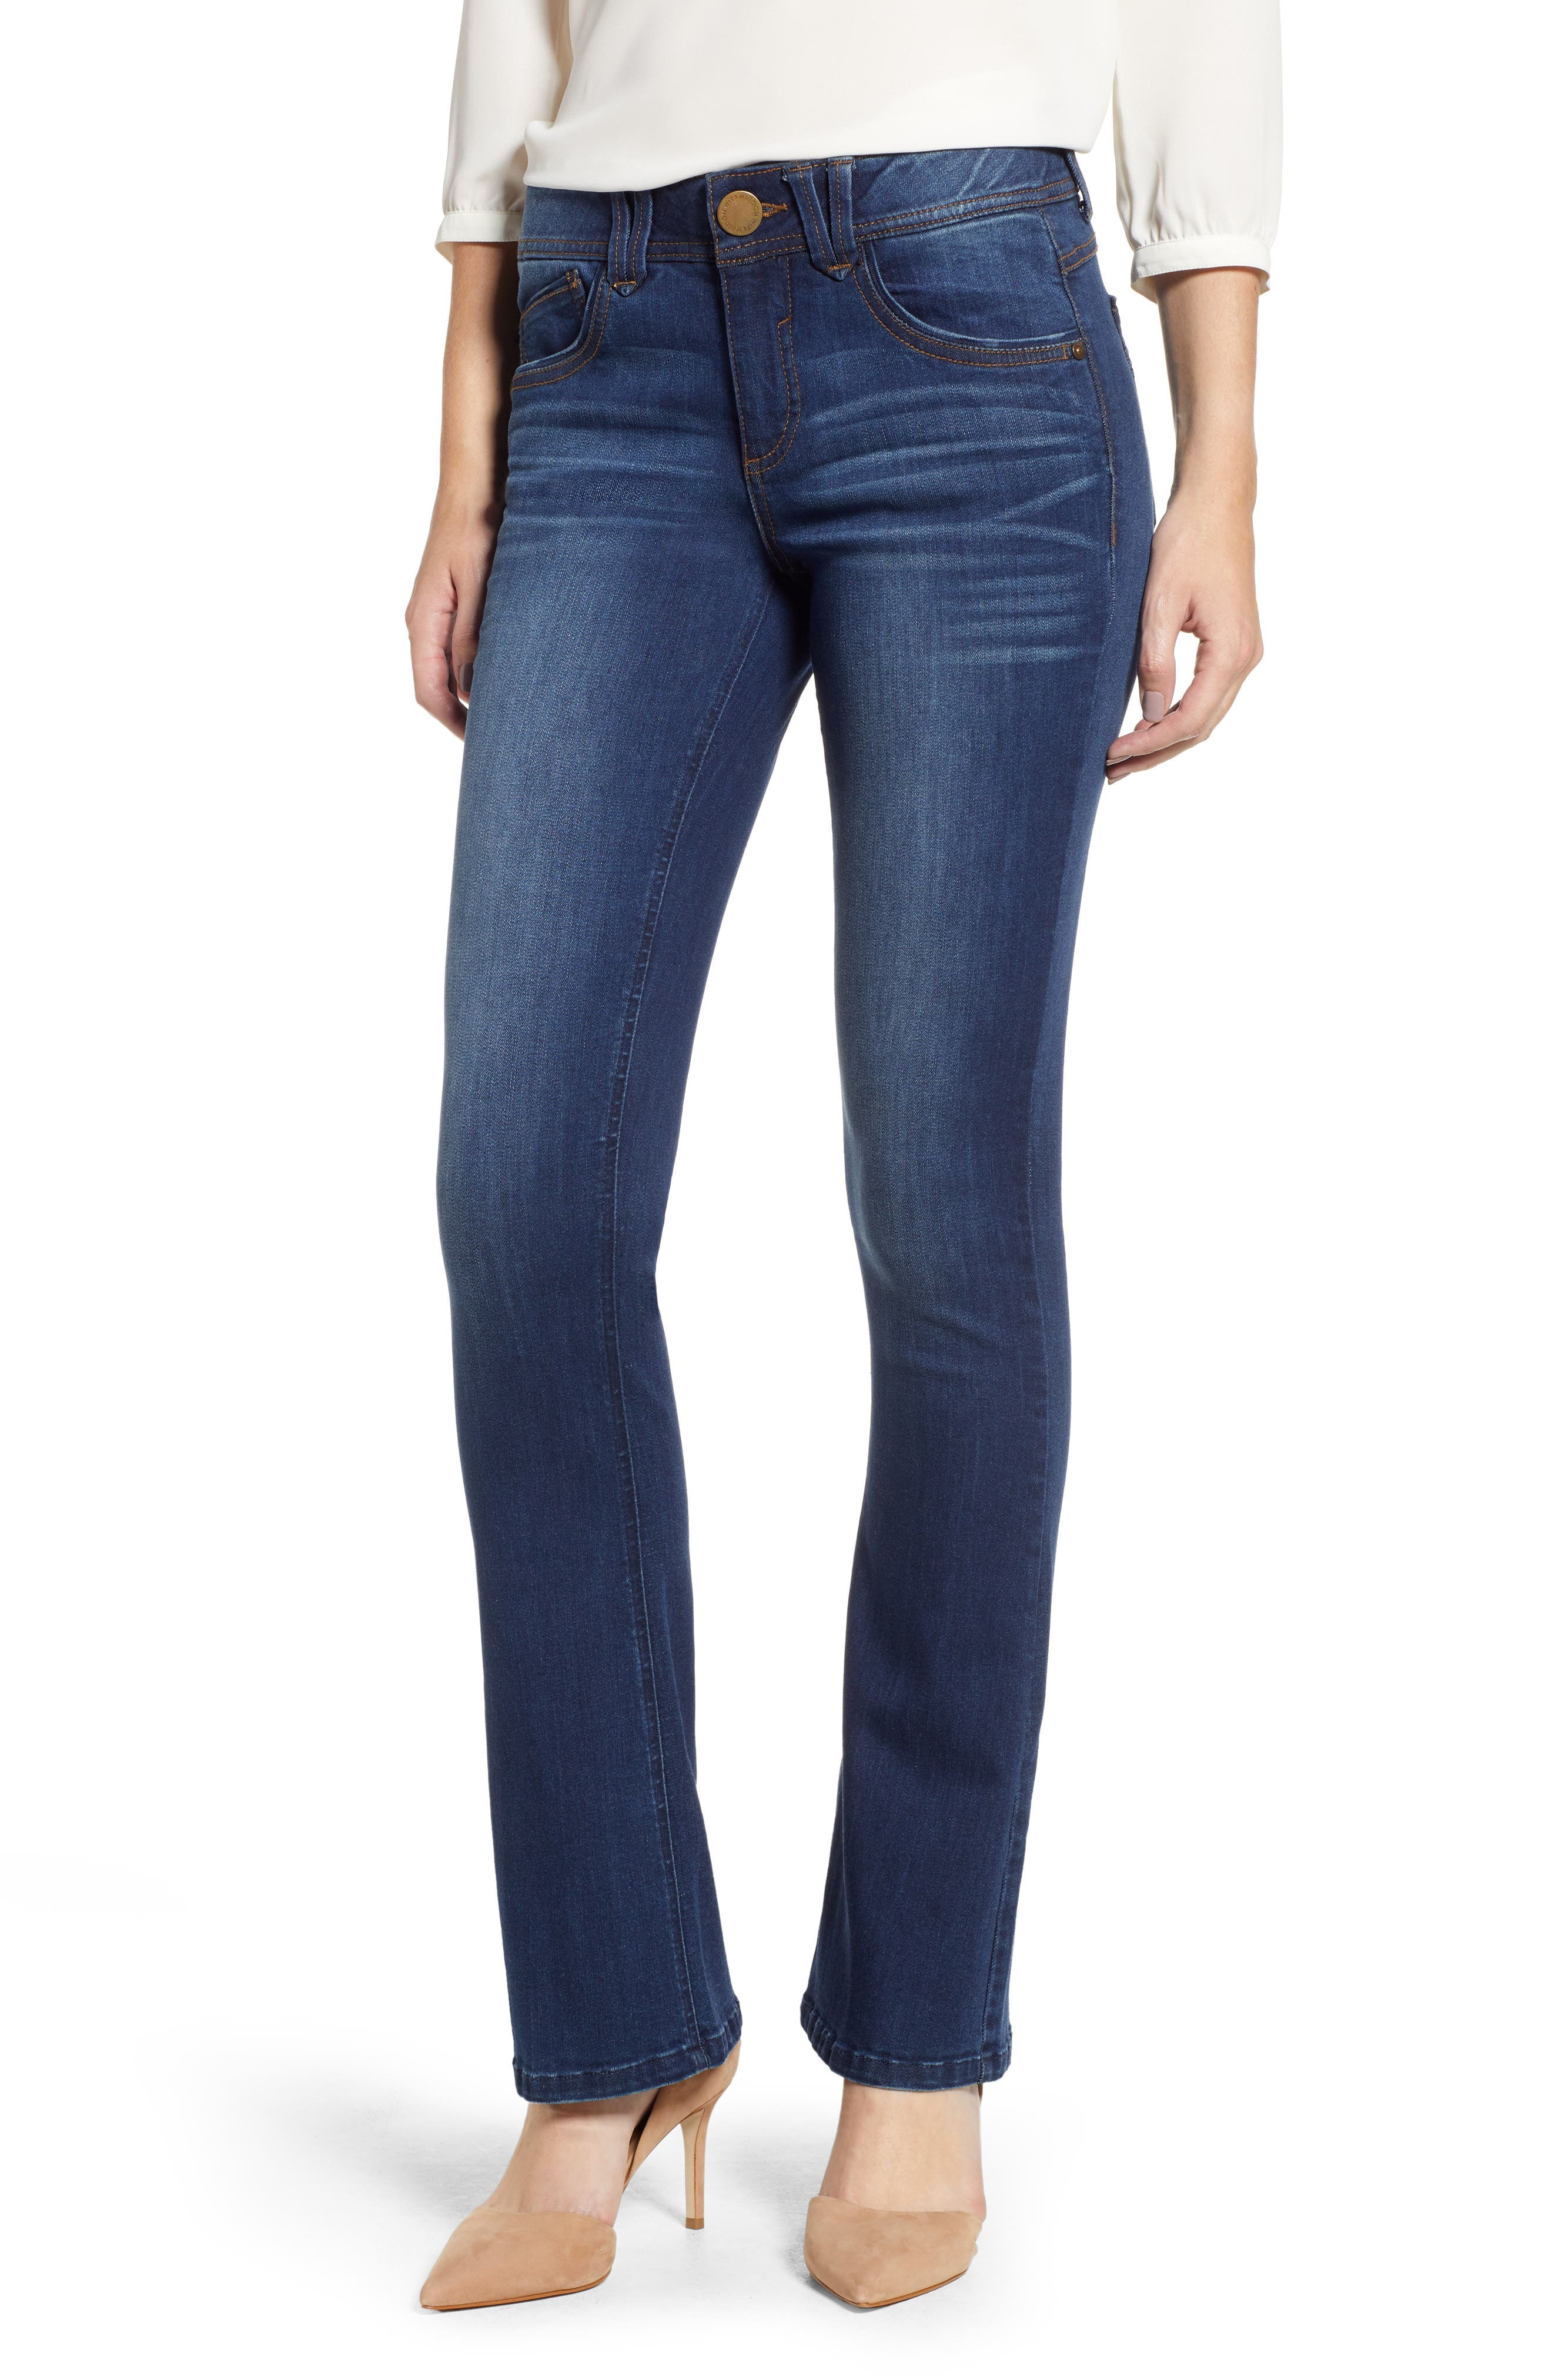 Ab-solution Luxe Touch Premium Jeans,                             Main thumbnail 1, color,                             420